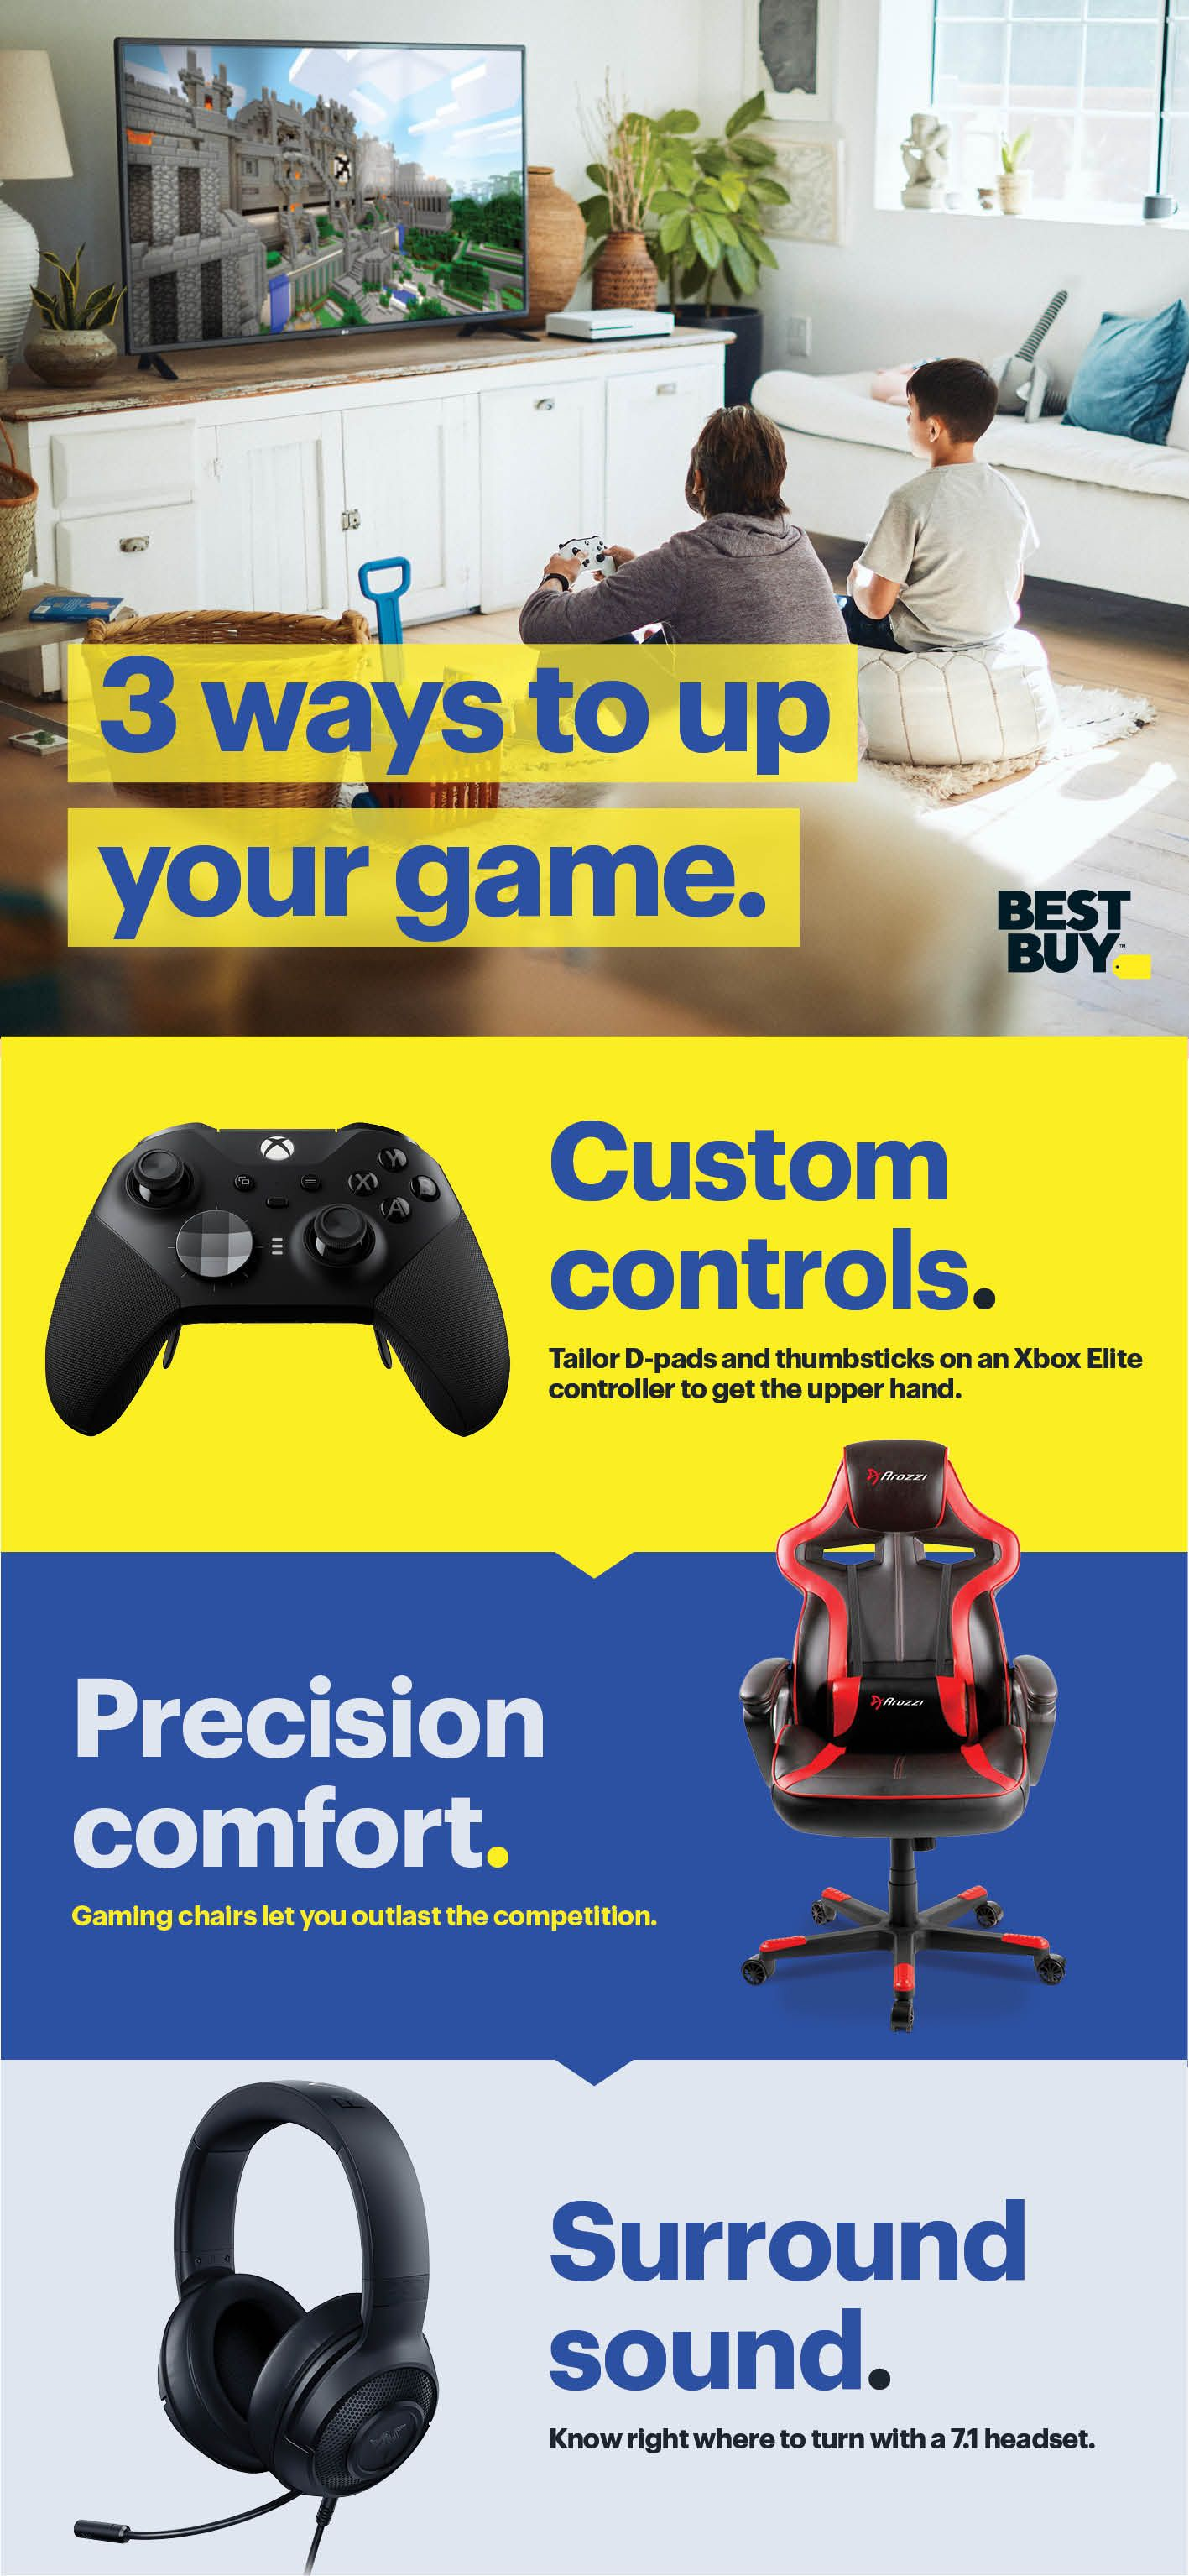 National Video Games Day National Video Game Day Cool Things To Buy Video Game Stores